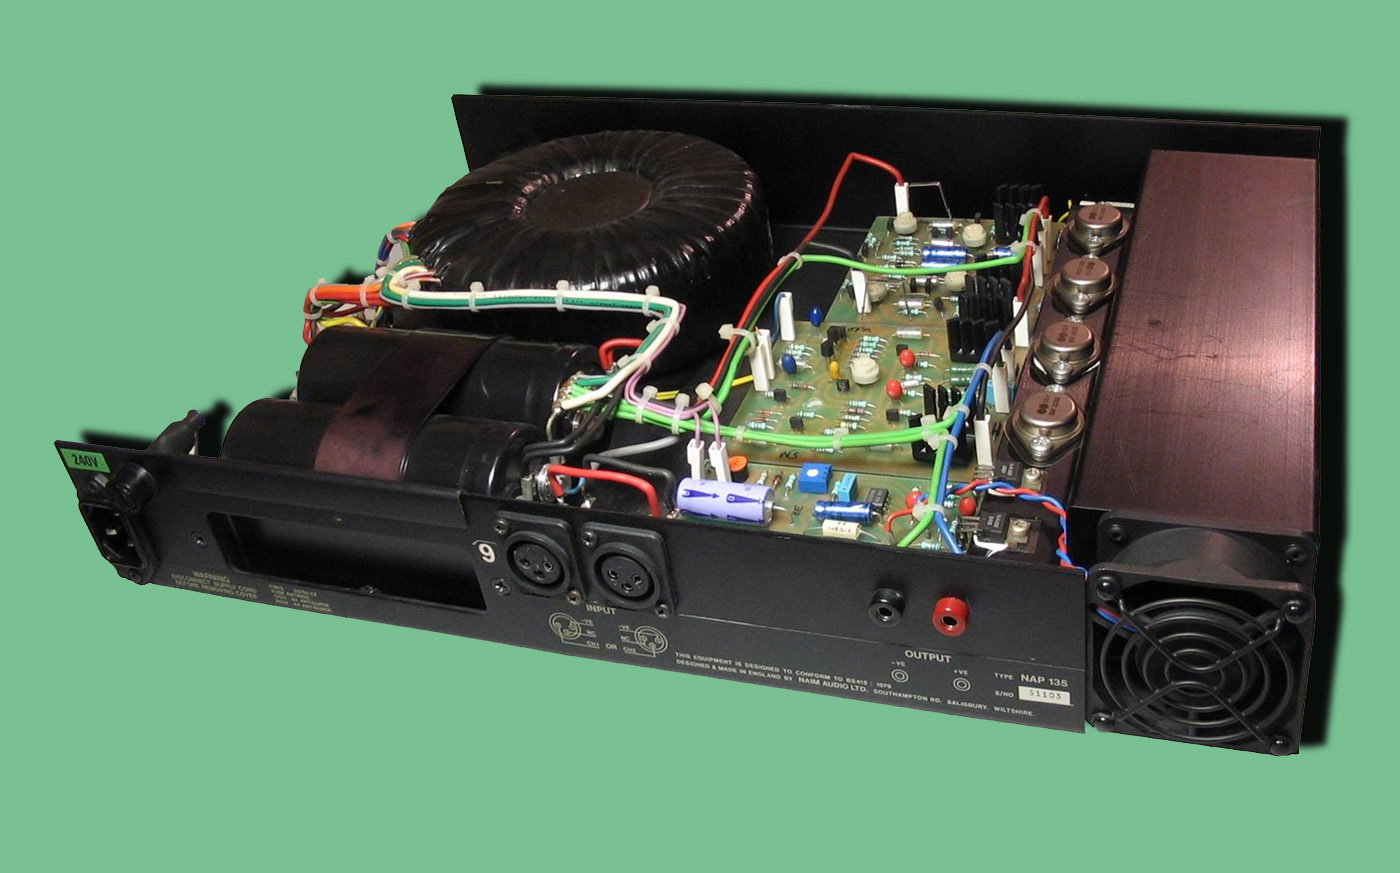 Naim Audio Amplification Wikipedia Circuit 150w Amplifier With Active Crossover Circuitschematic Inside A Monoblock Chrome Nap 135